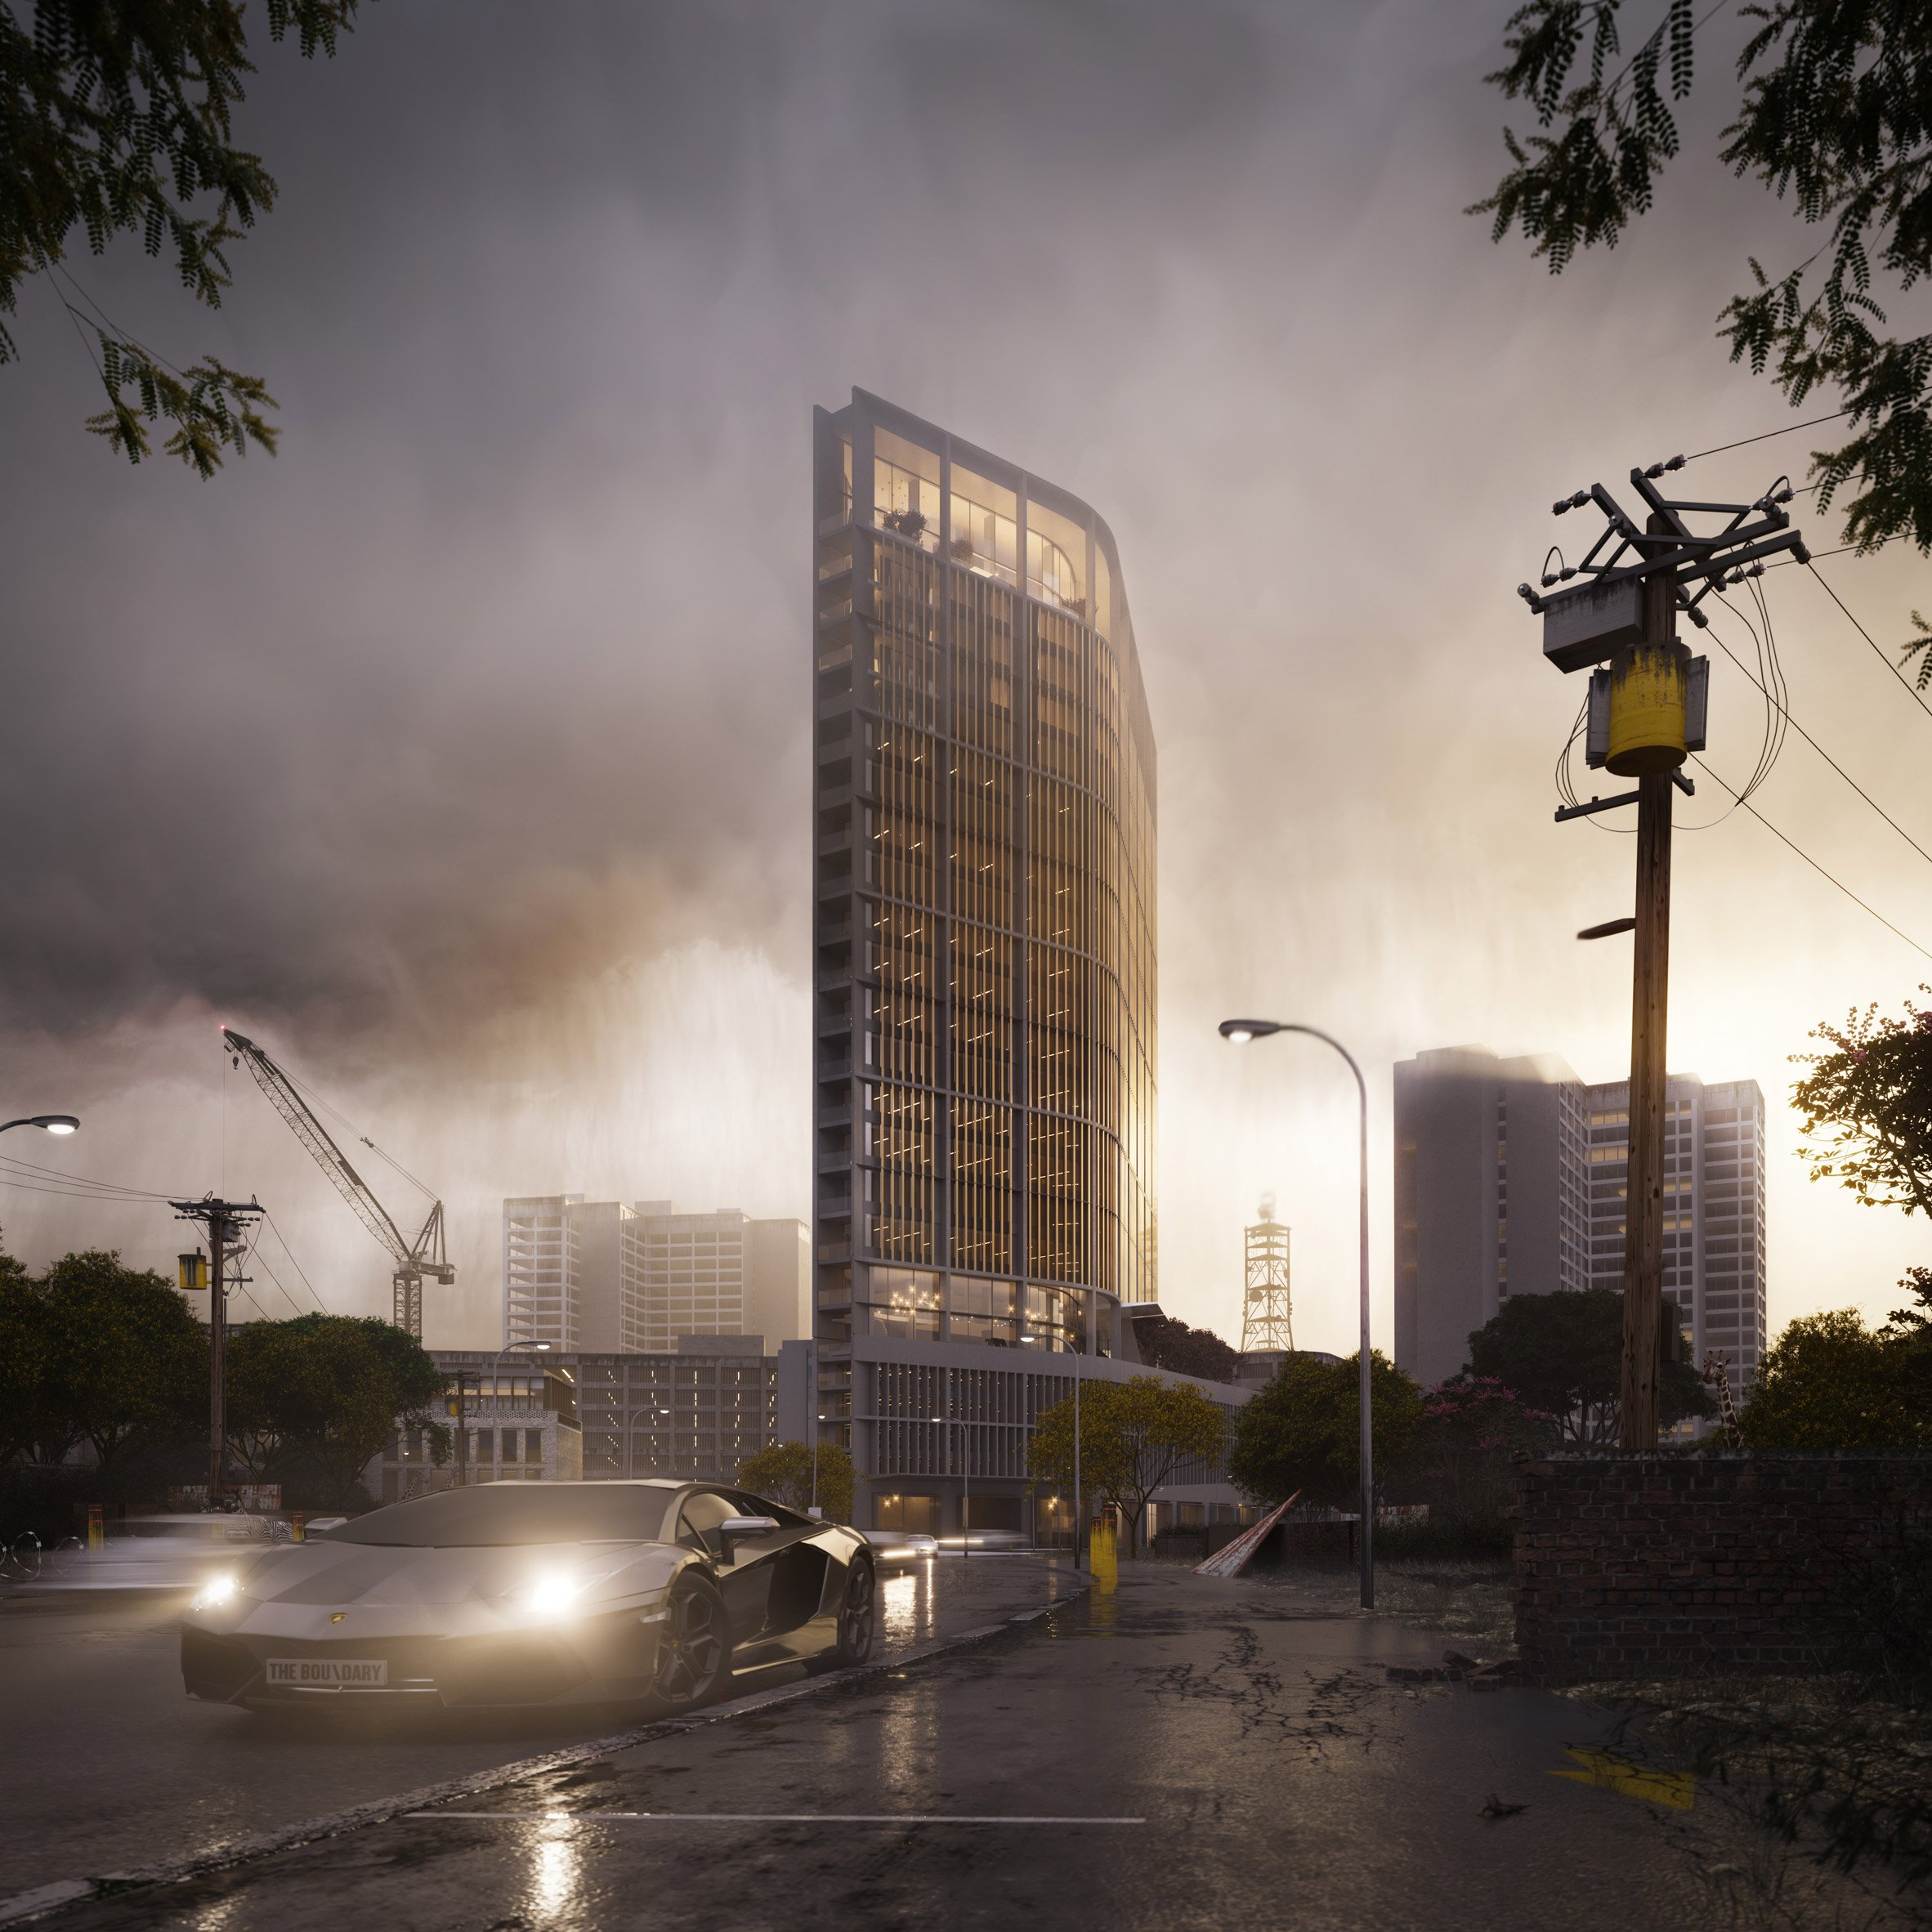 Richard Keep and Henry Goss unveil plans for Nairobi tower in rainy renderings